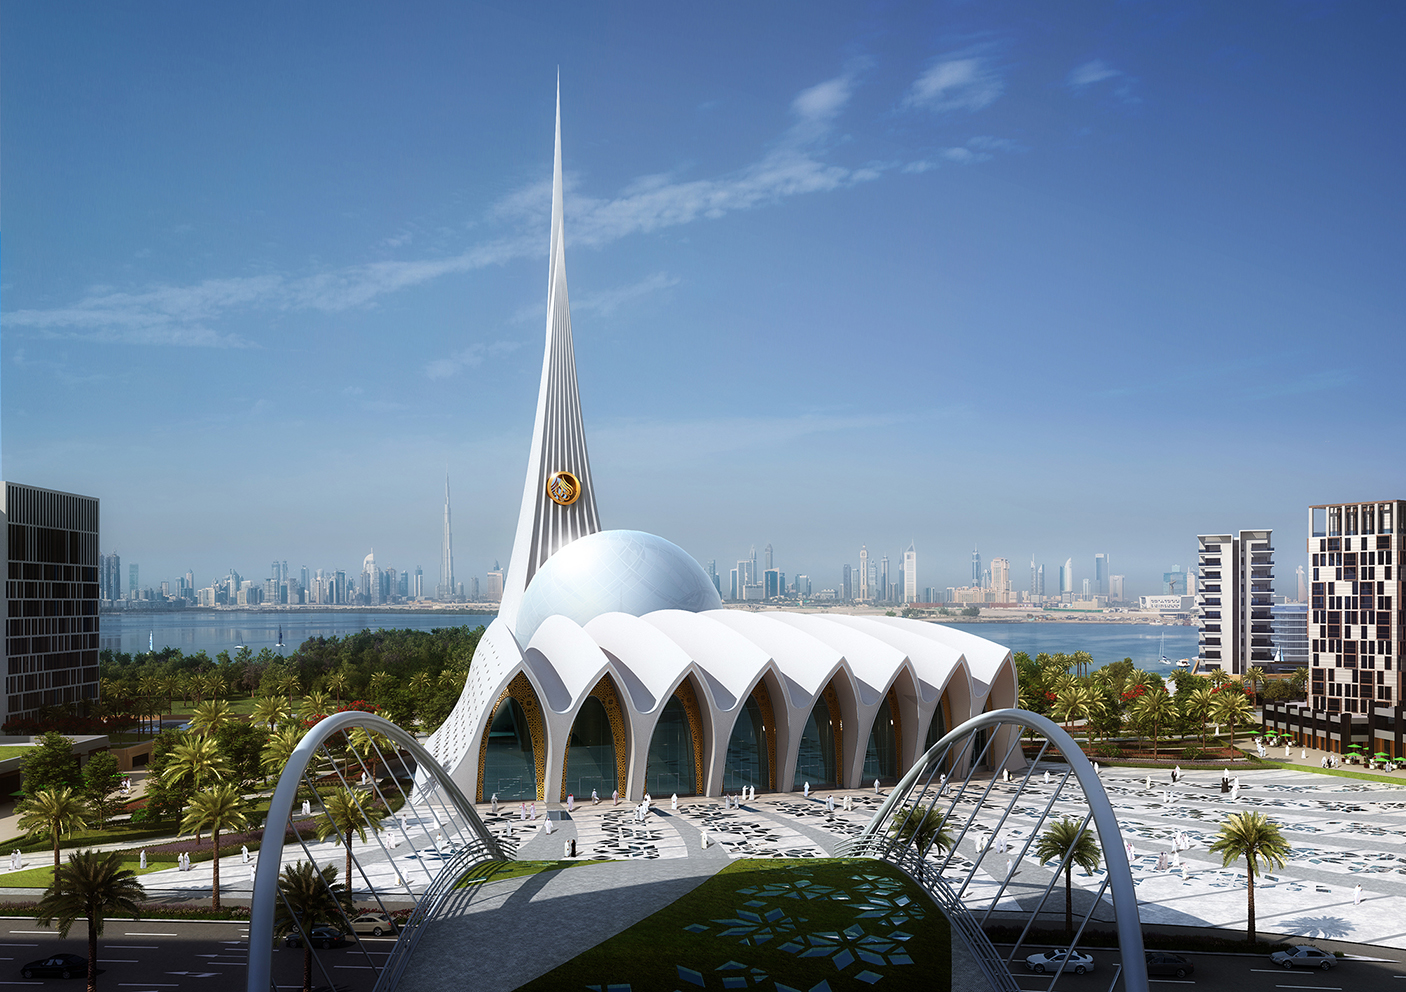 iconic mosque in Dubai inspired by pearl and shell